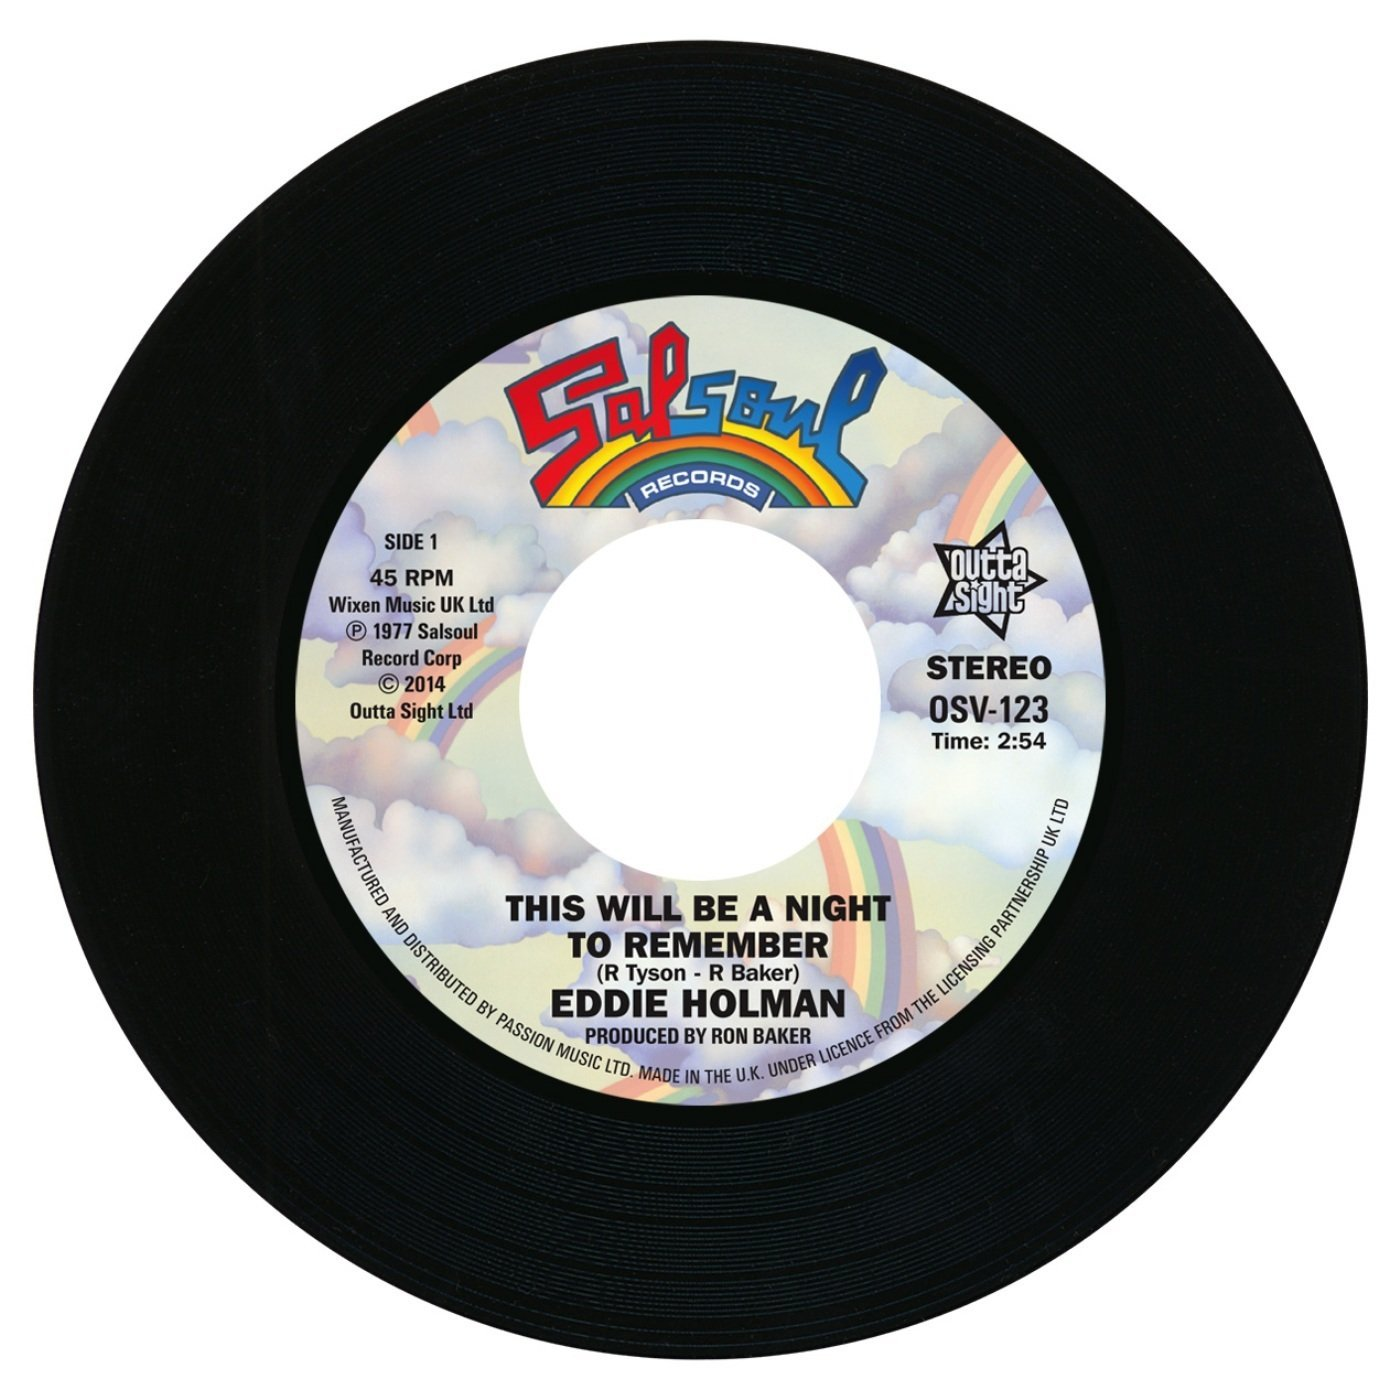 Eddie Holman – This Will Be A Night To Remember / Double Exposure – Ten Percent 45